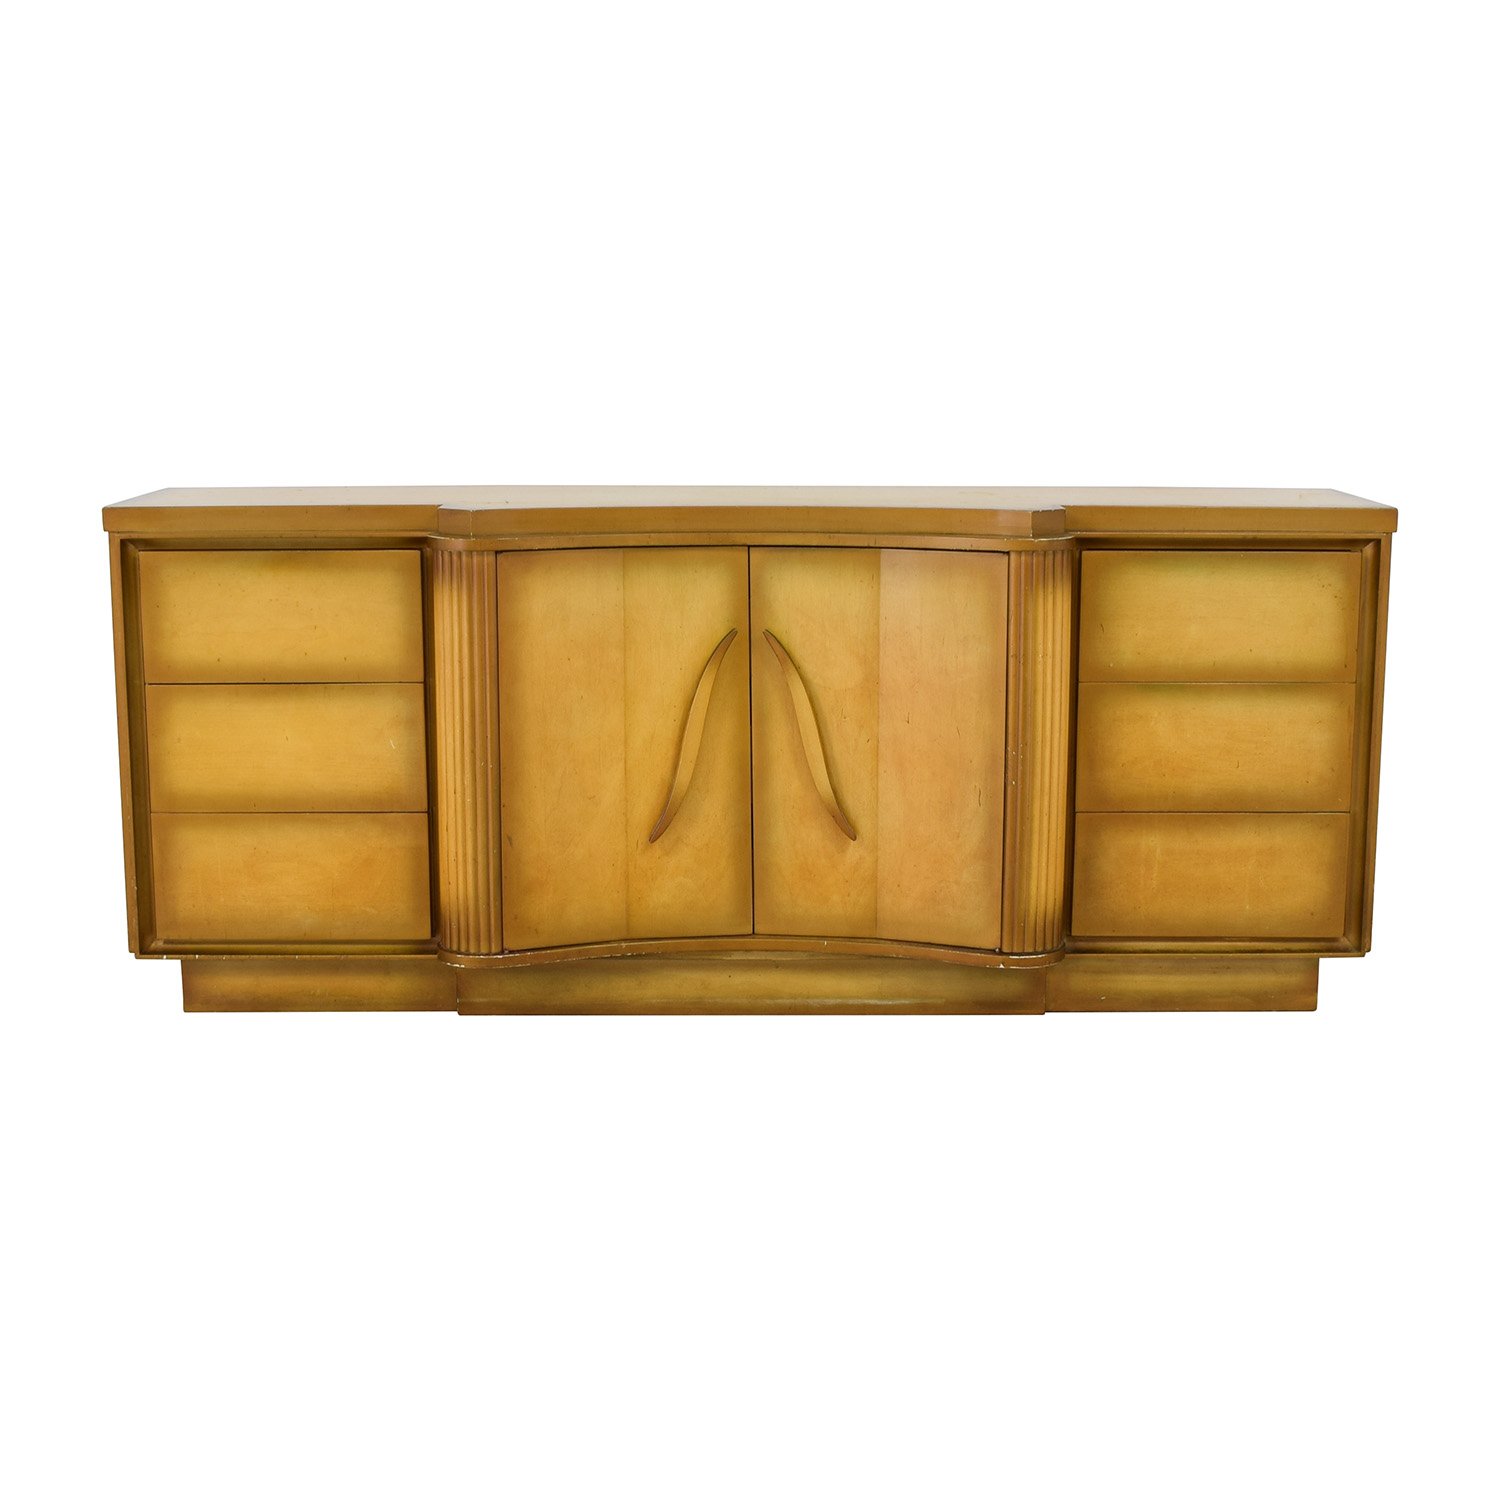 shop Detroit Furniture Distributing Evergreen Nine Drawer Dresser Detroit Furniture Distributing Co. Dressers